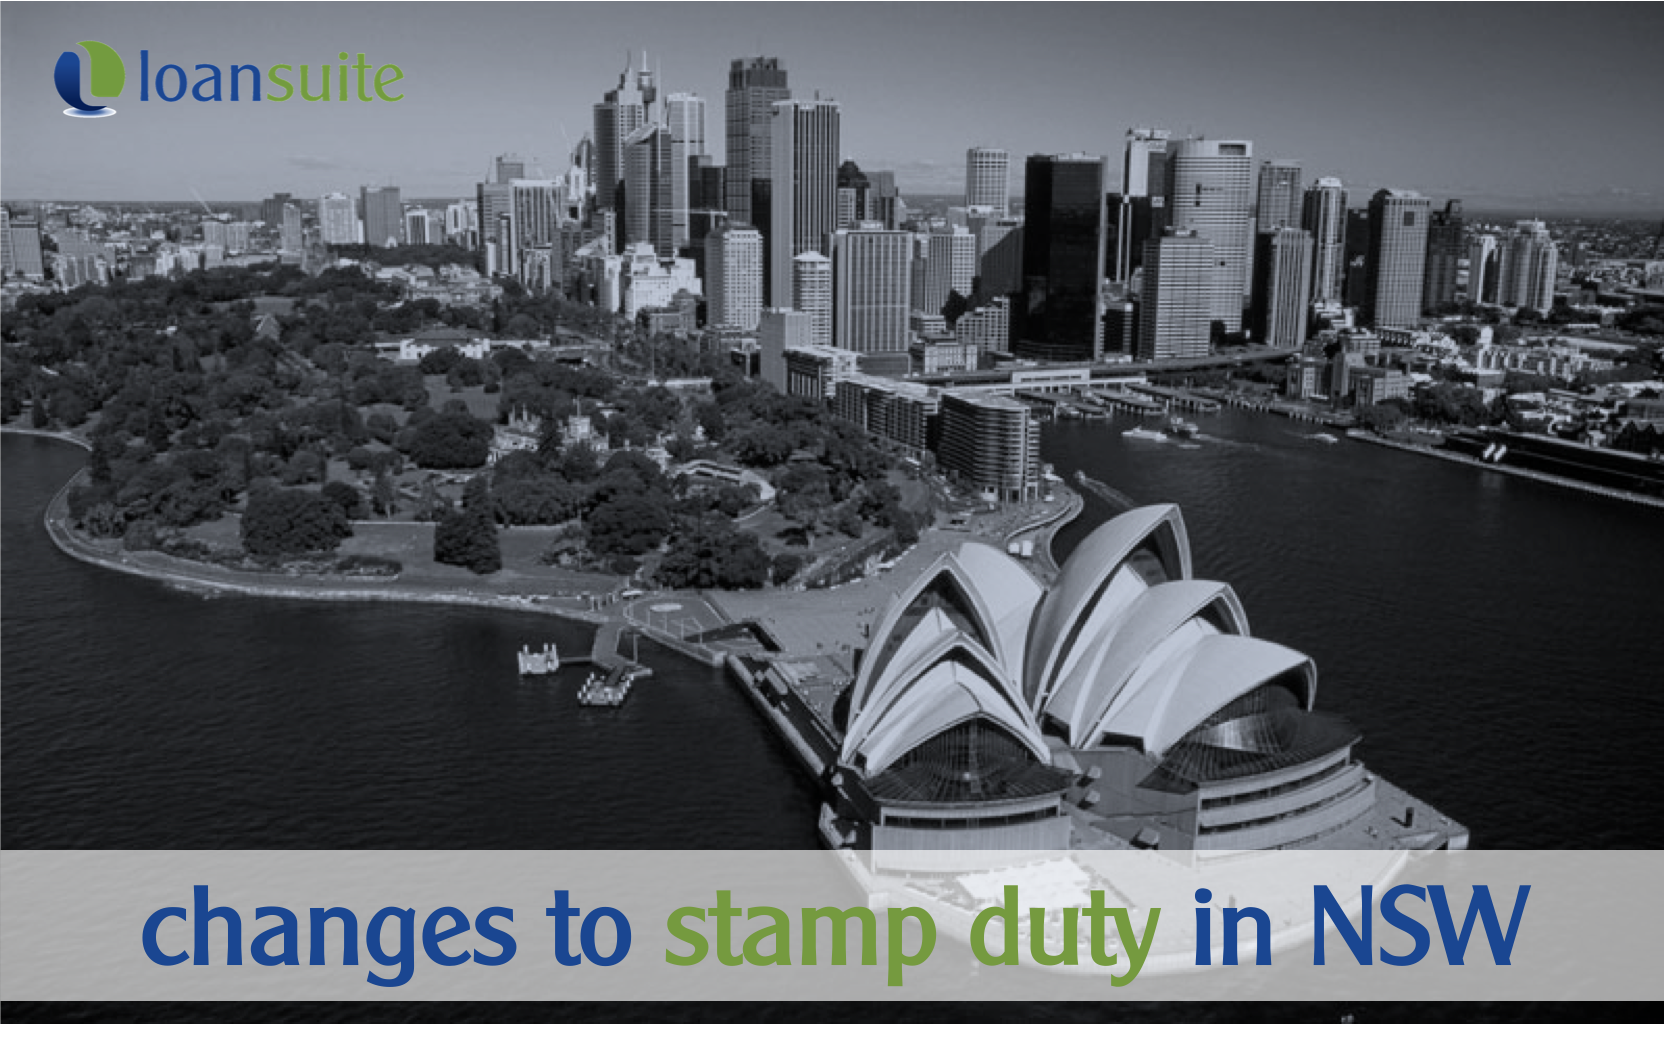 NSW Stamp Duty Changes - Loansuite - Mortgage Brokers